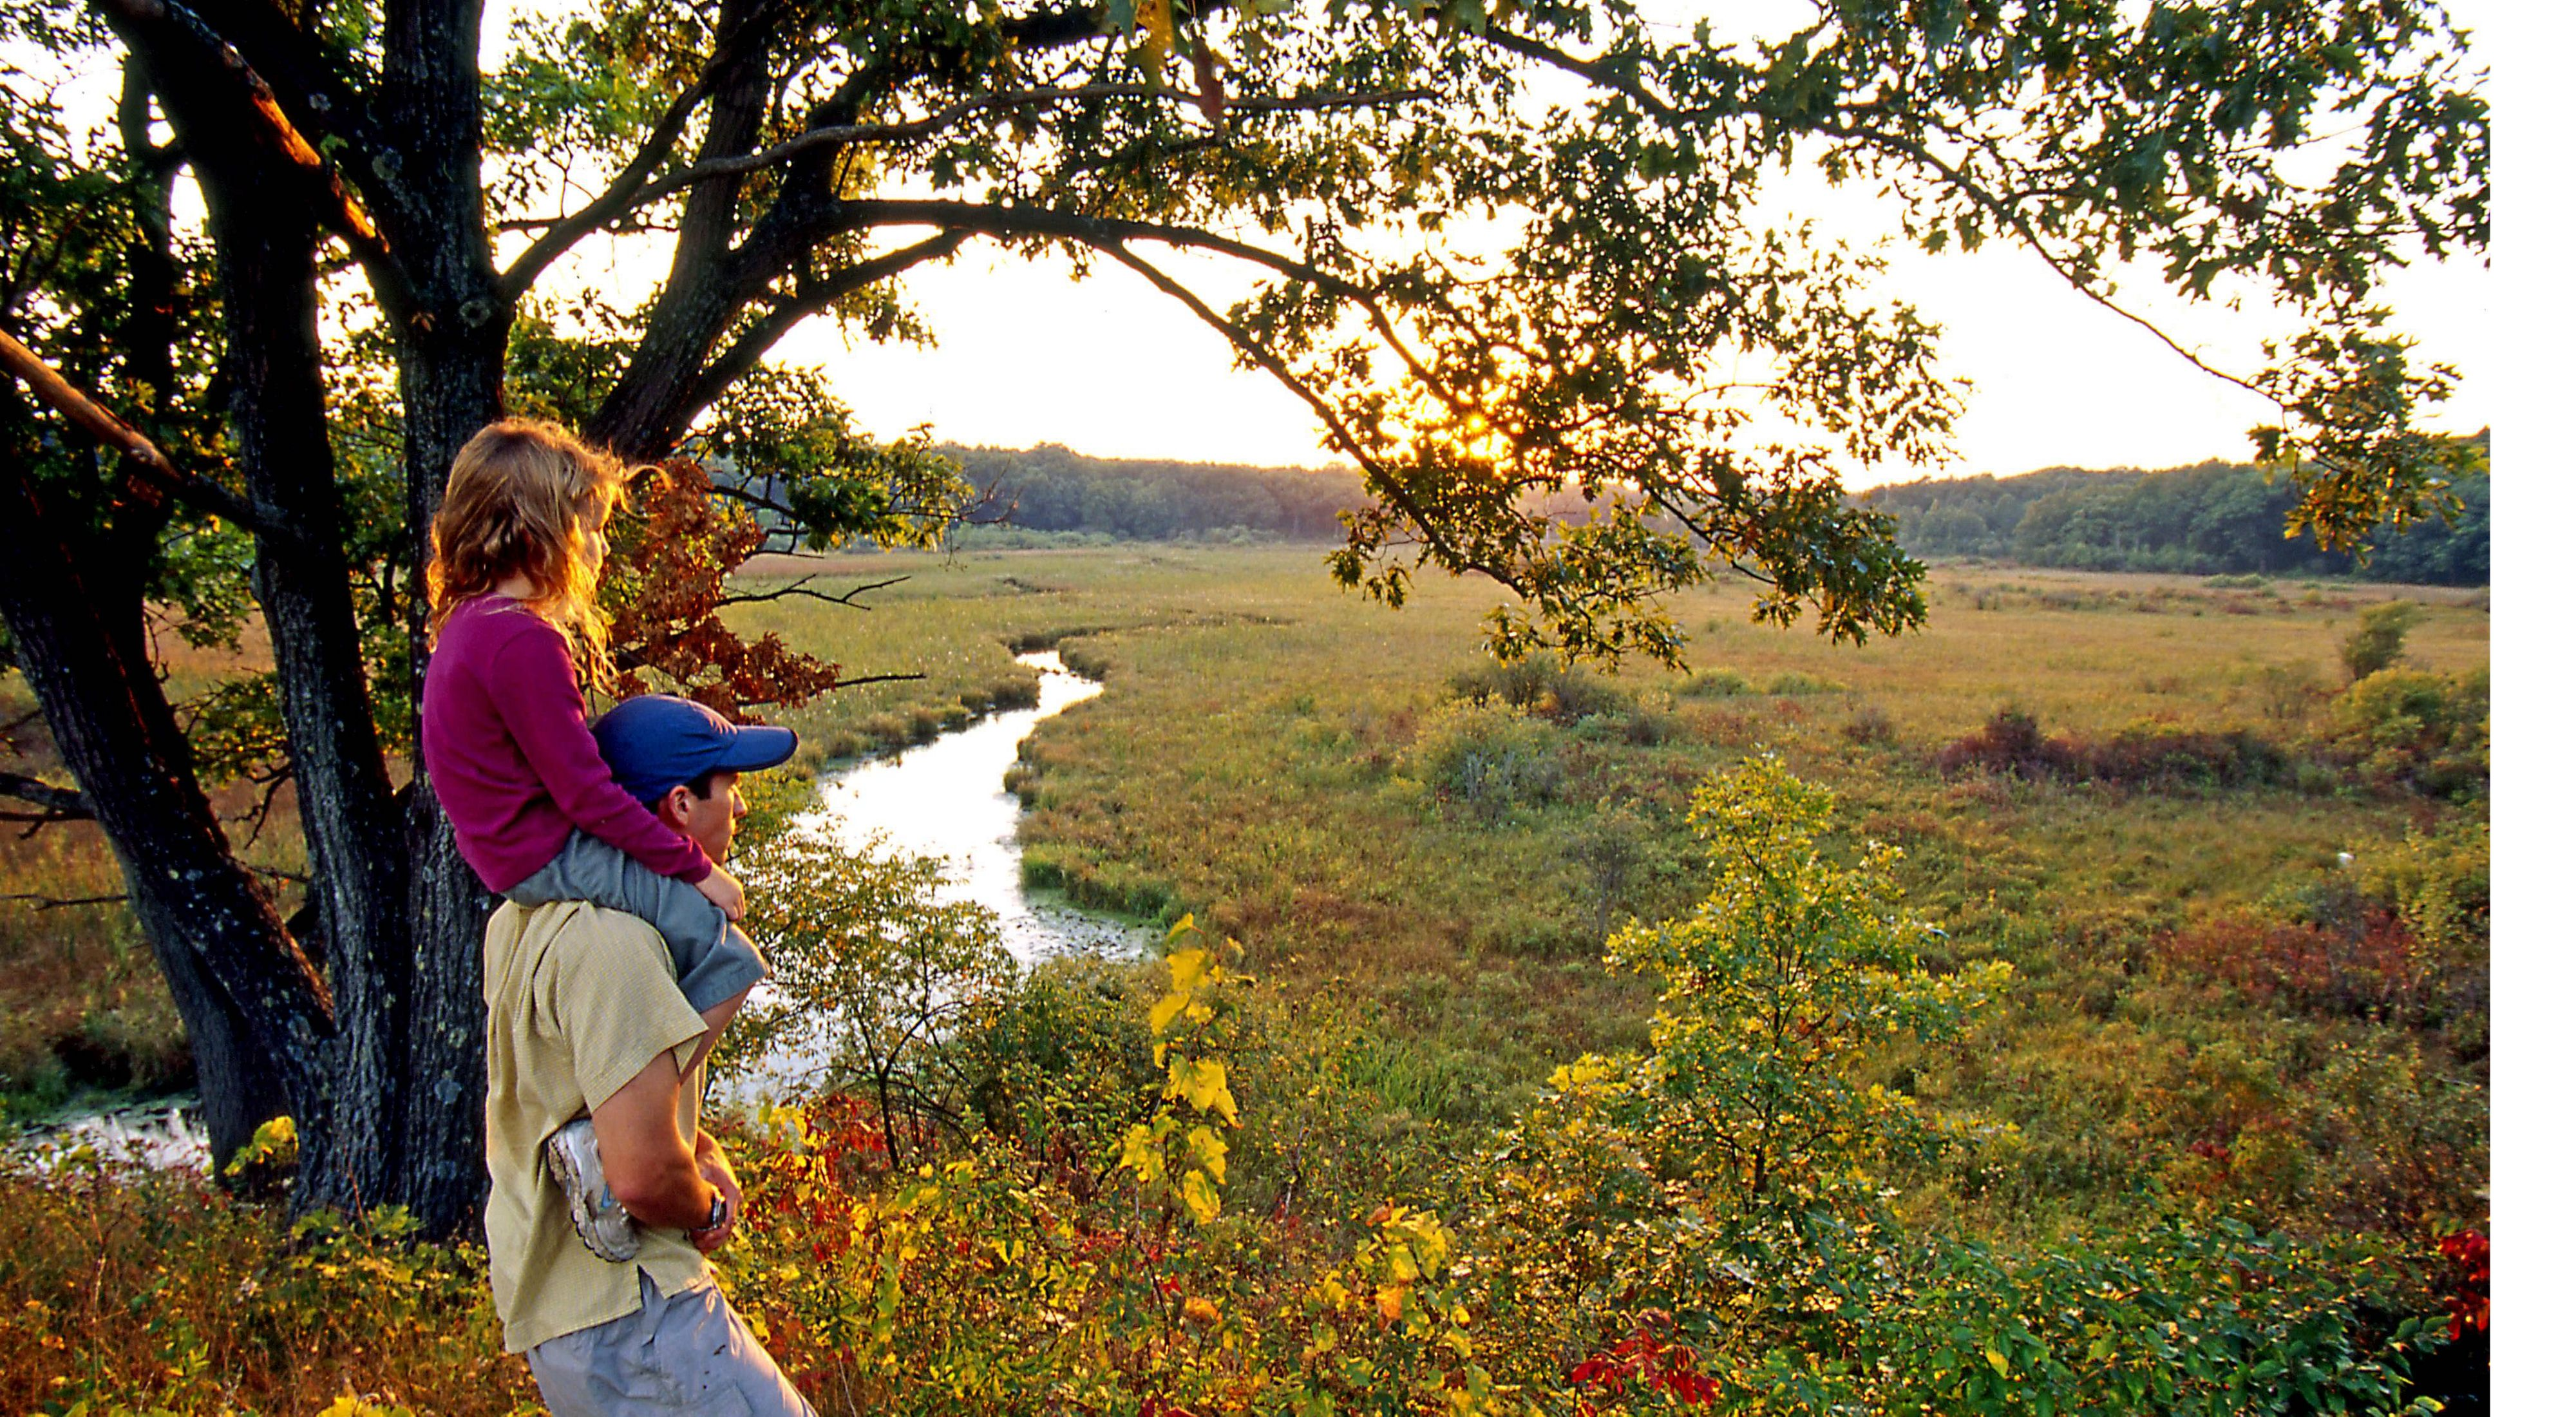 The Mukwonago River, also called Crooked Creek, winds among wetlands, prairies and savannas found at preserves like the Lulu Lake Preserve.